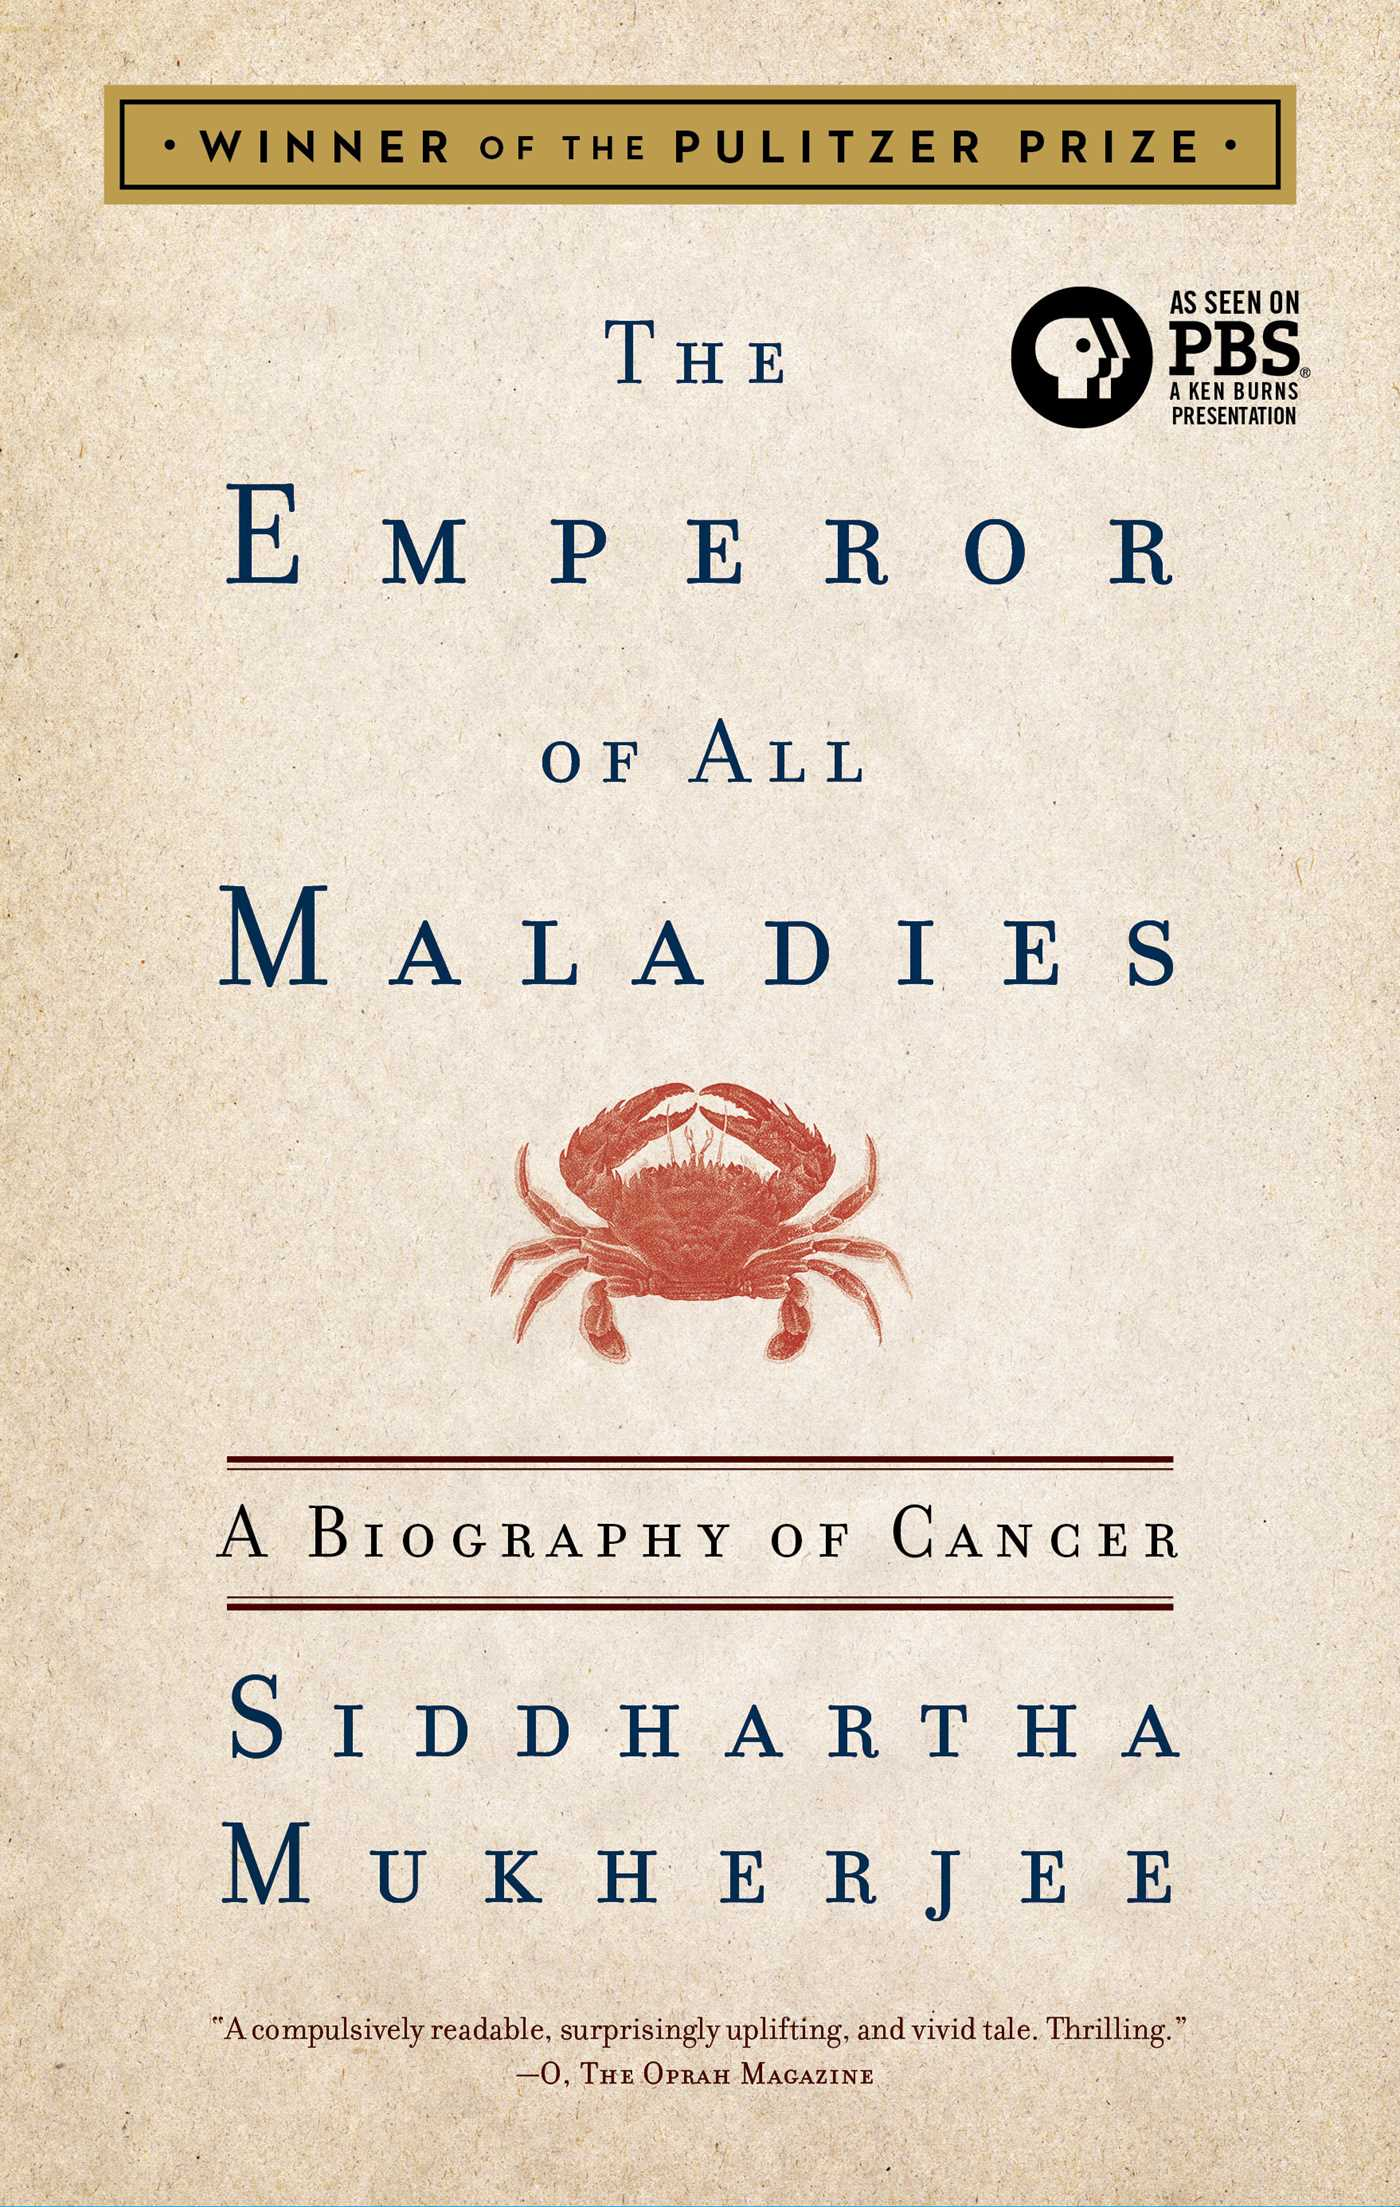 Emperor-of-all-maladies-9781439181713_hr